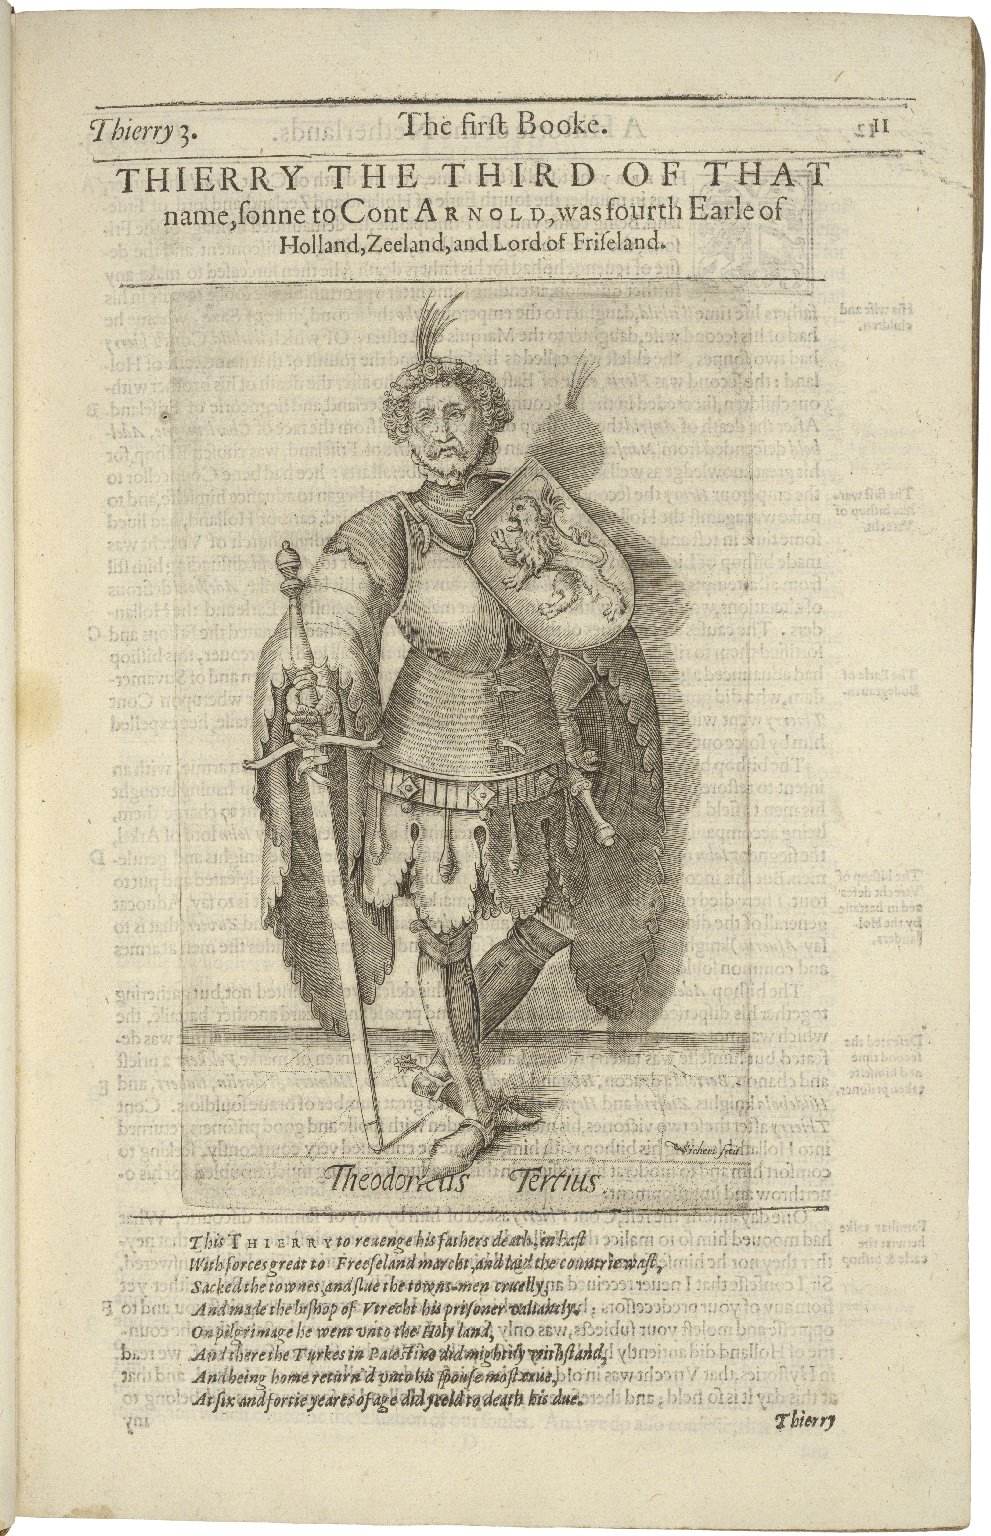 A generall historie of the Netherlands: vvith the genealogie and memorable acts of the Earls of Holland, Zeeland, and west-Friseland, from Thierry of Aquitaine the first Earle, successiuely vnto Philip the third King of Spaine: continued vnto this present